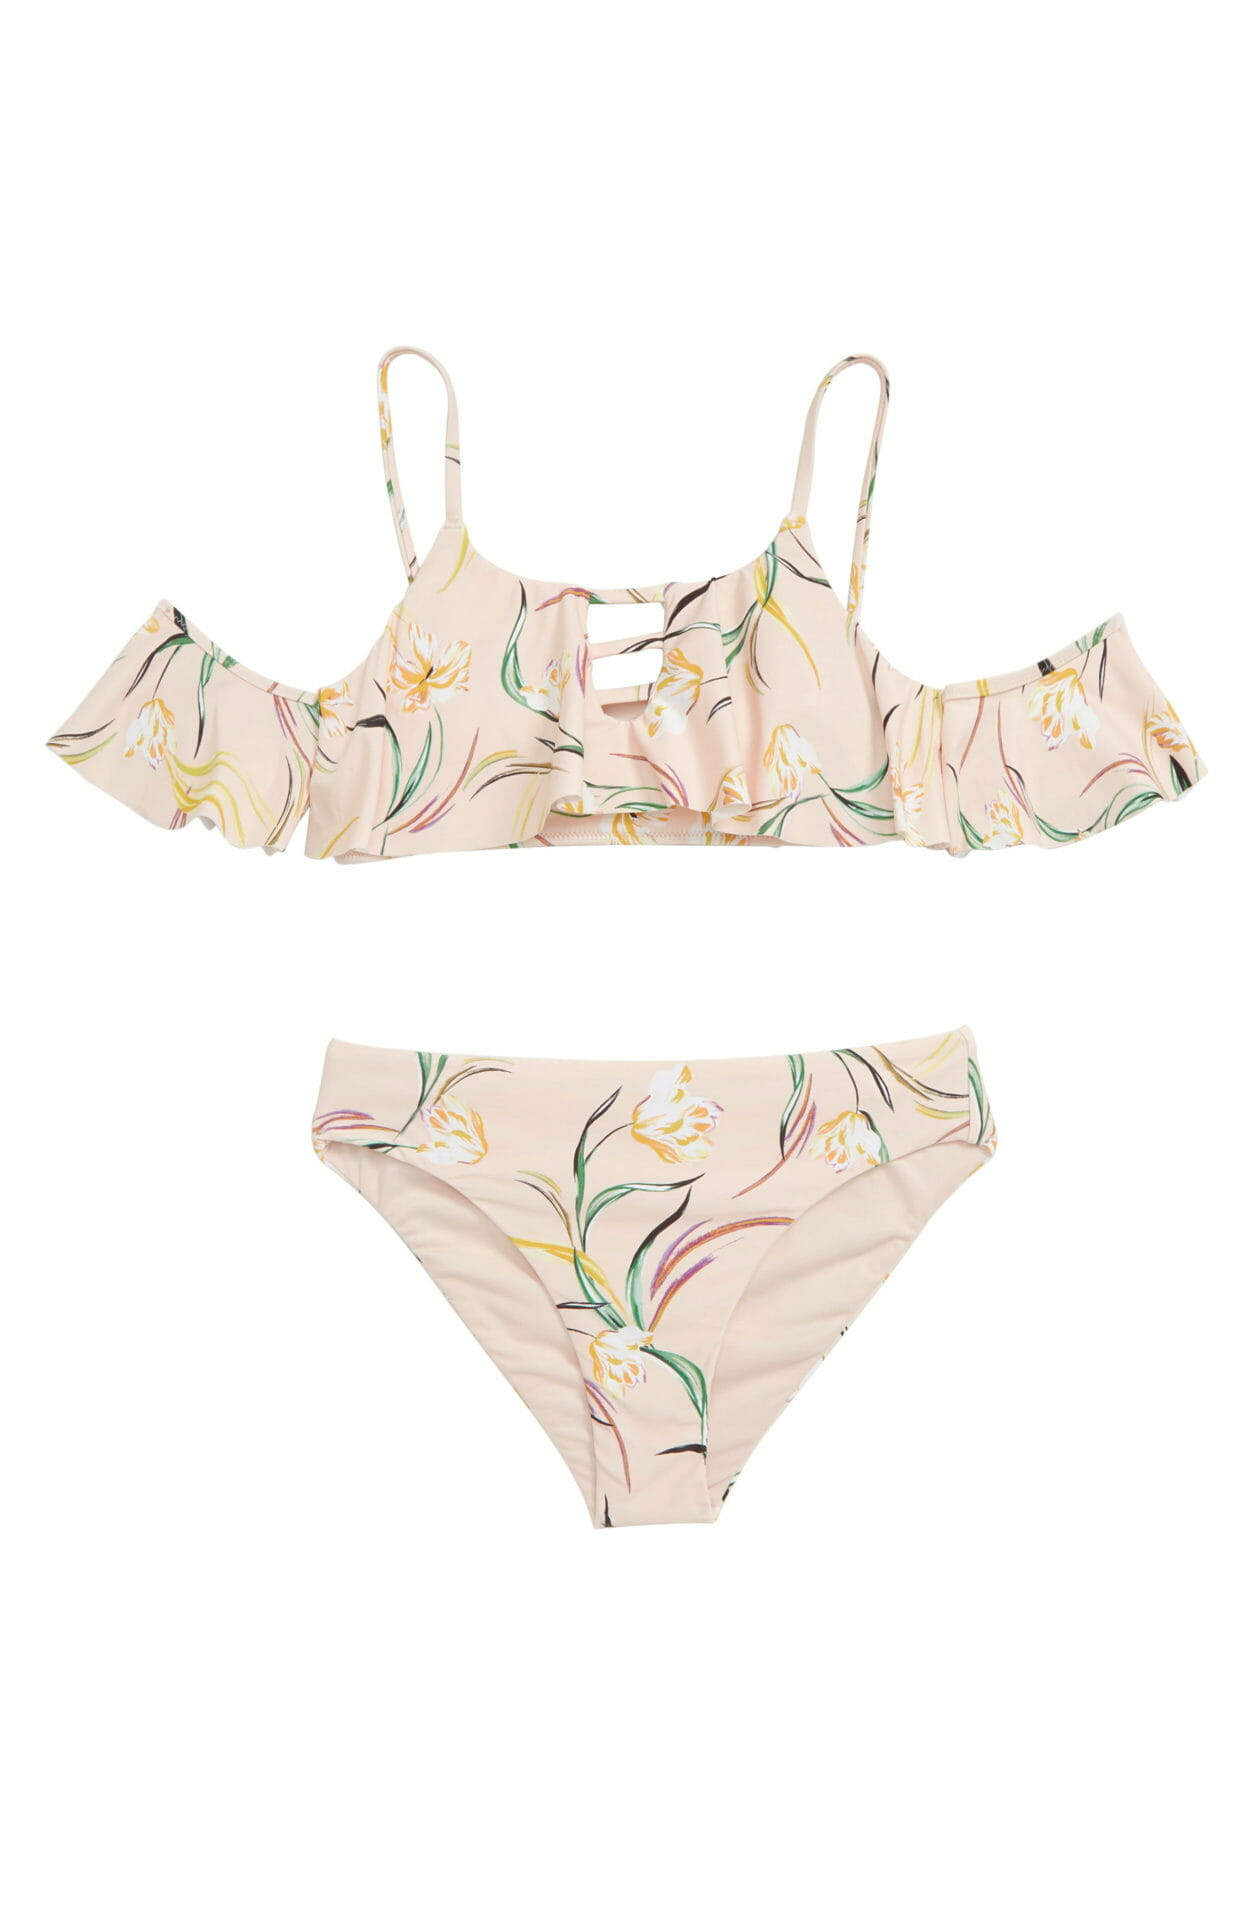 O'NEILL Claris Off the Shoulder Two-Piece Swimsuit, Main, color, ICED PEACH